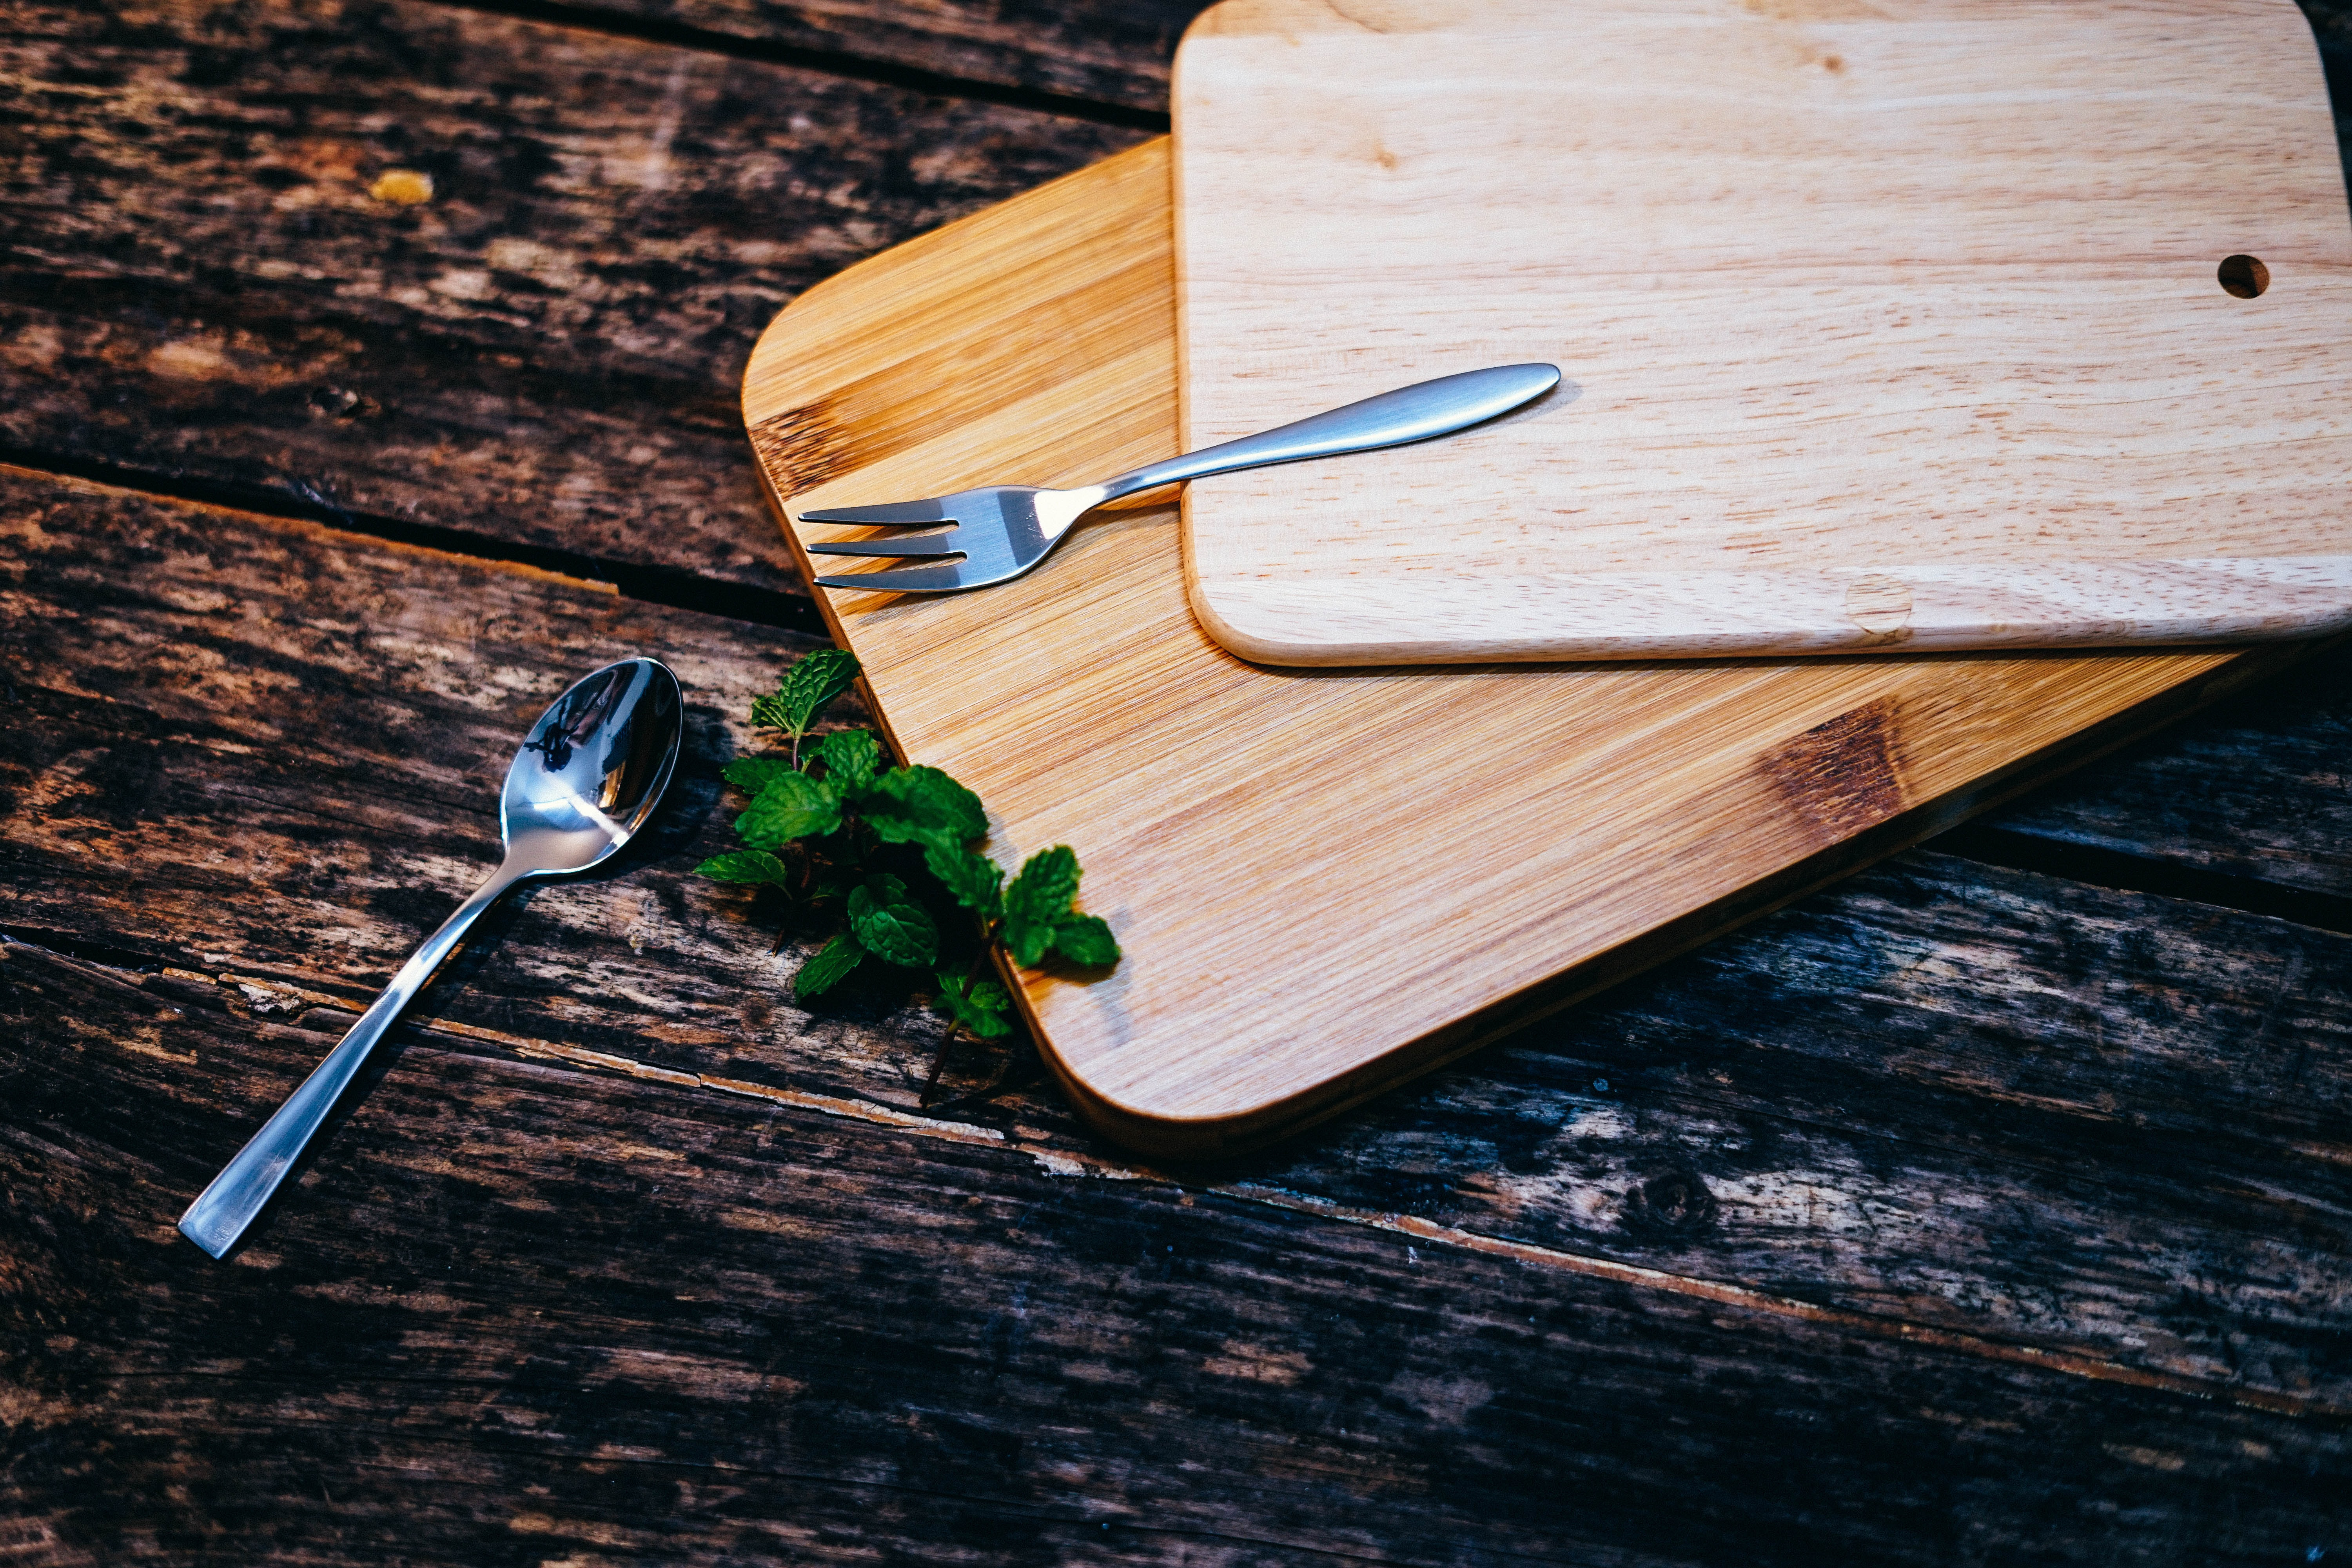 Two wooden chopping boards on top of each other beside leaves of mint and a metal spoon and fork